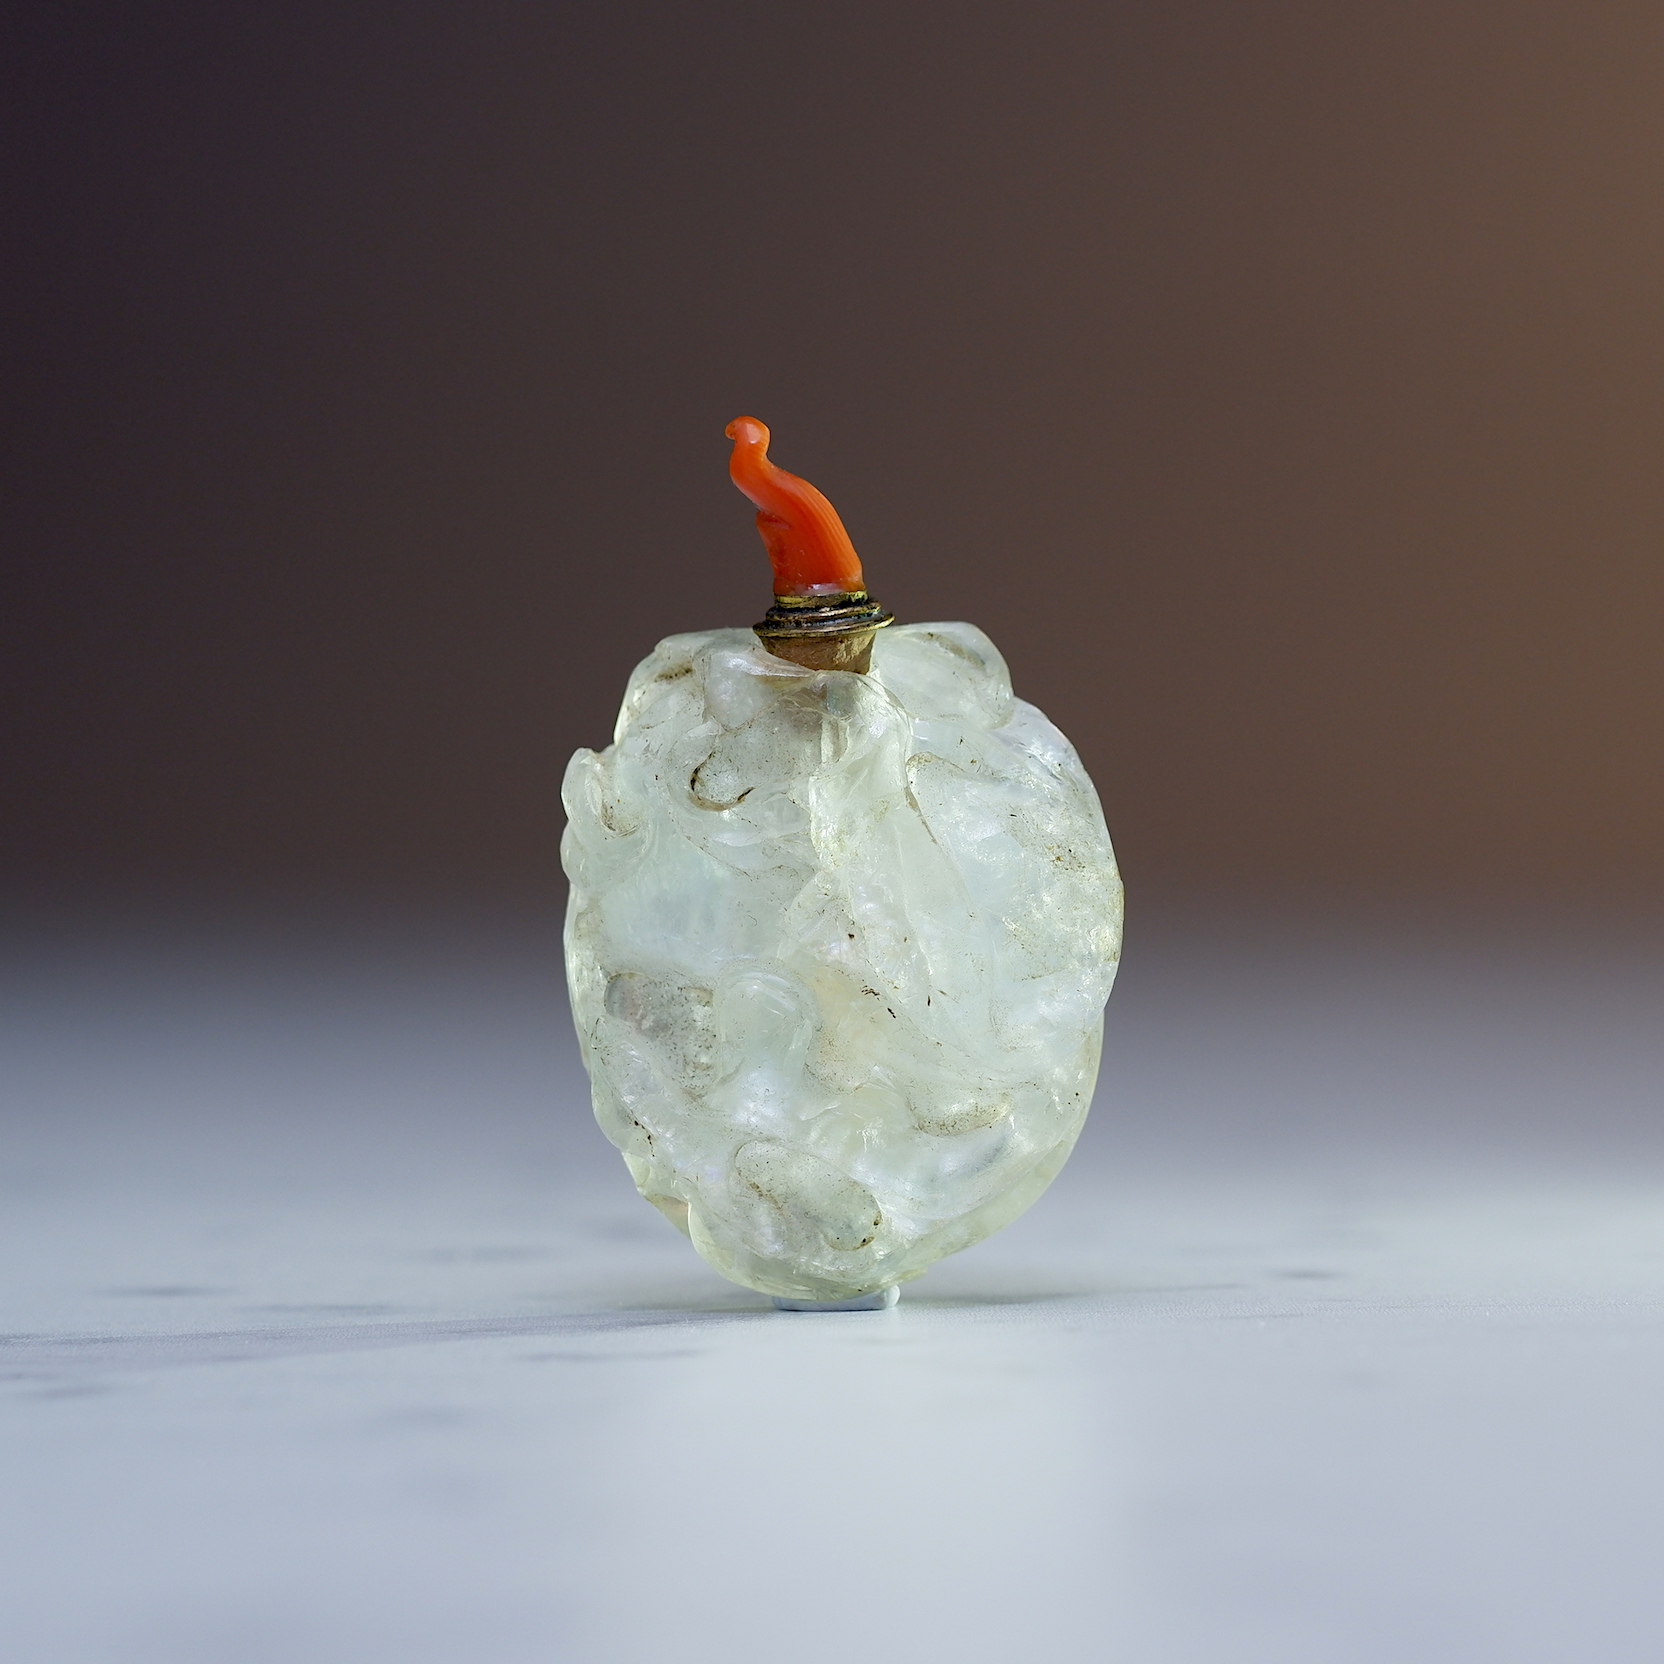 'Antique Chinese Rock Crystal Snuff Bottle Carved as a Melon'